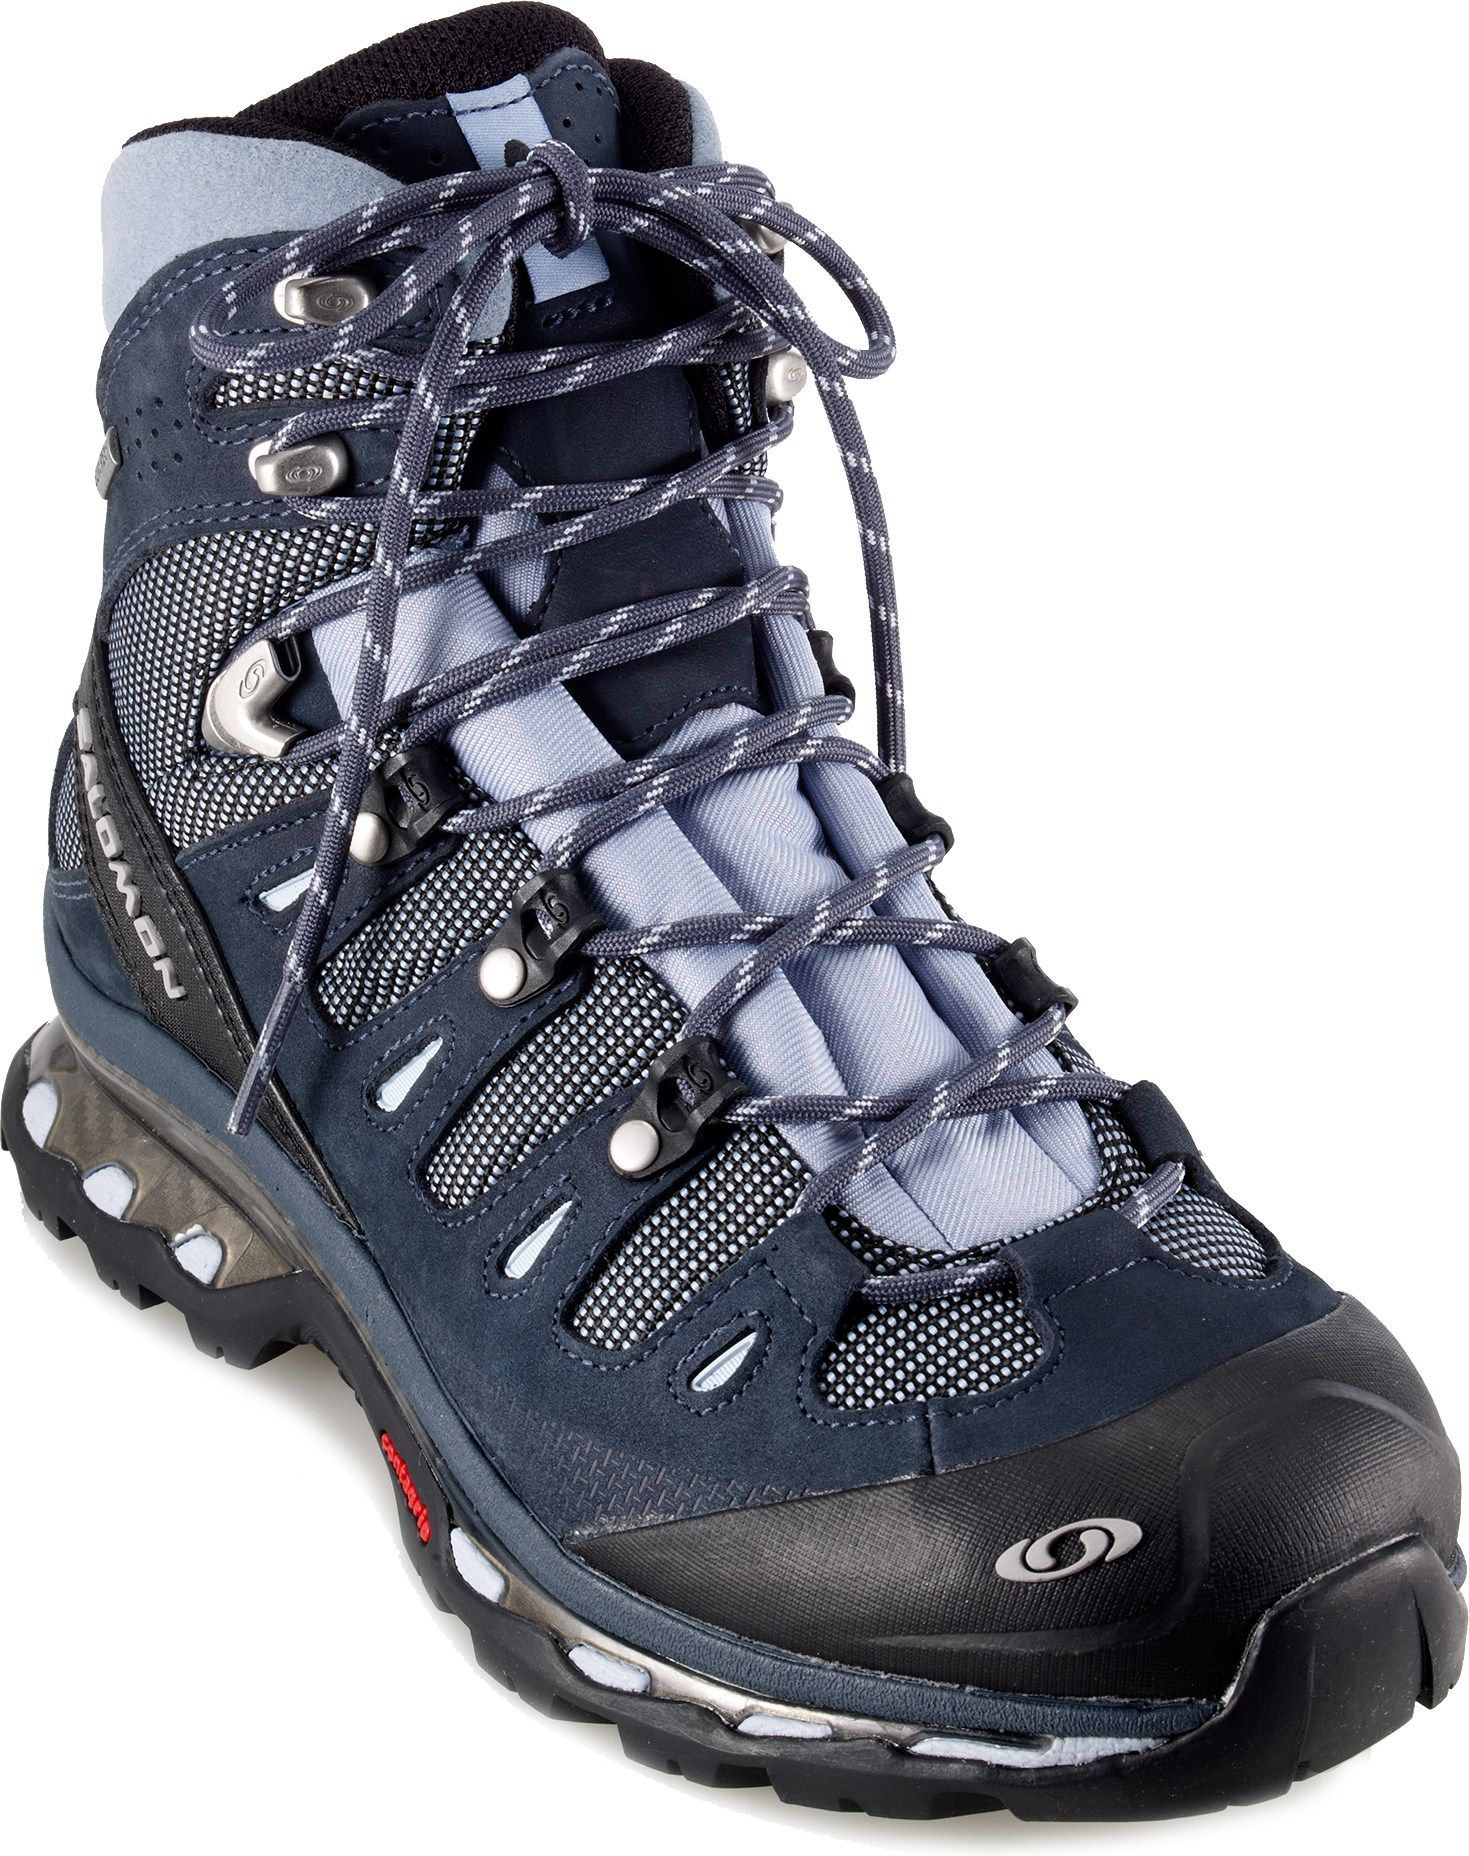 Salomon Quest 4D GTX Hiking Boots Women's | REI Co op